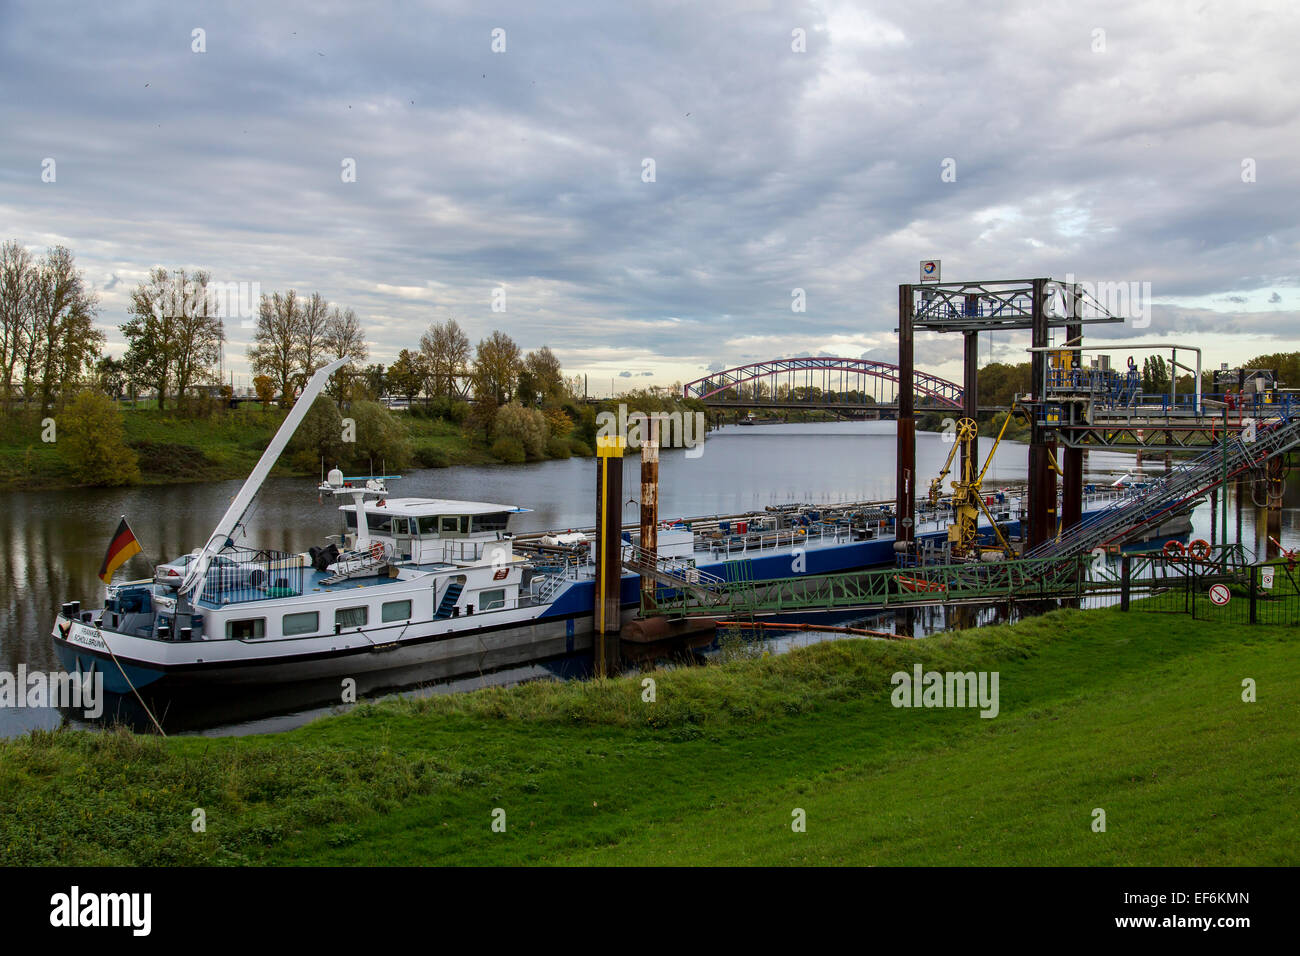 Duisburg-Ruhrort, Europe's largest inland port, river Rhine, fuel and oil products loading station - Stock Image